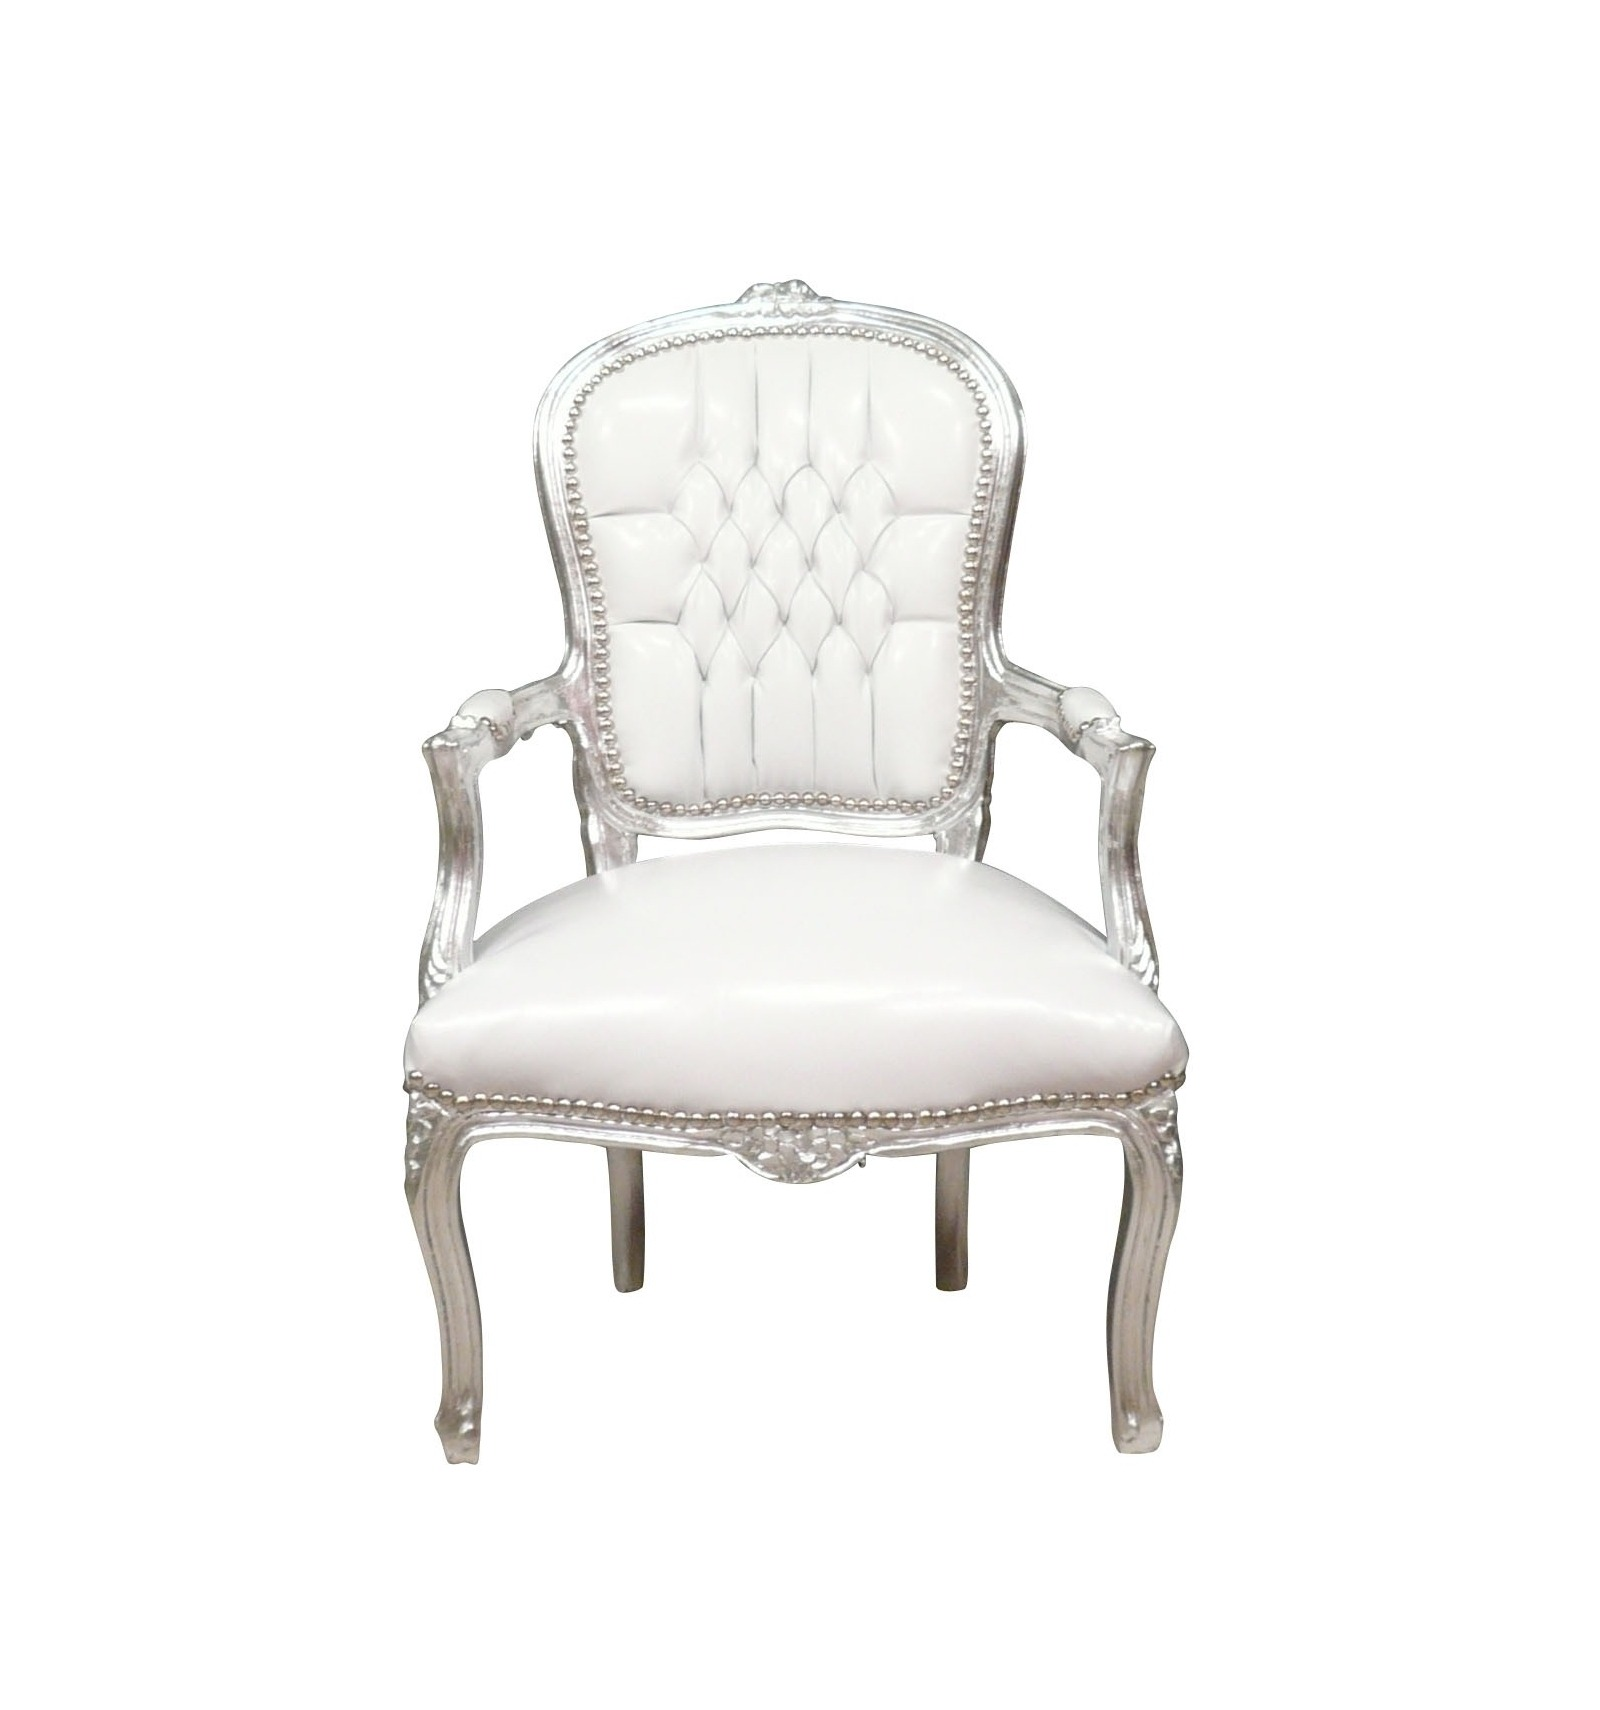 Armchair baroque louis xv white and silver louis xv for Chaise fauteuil